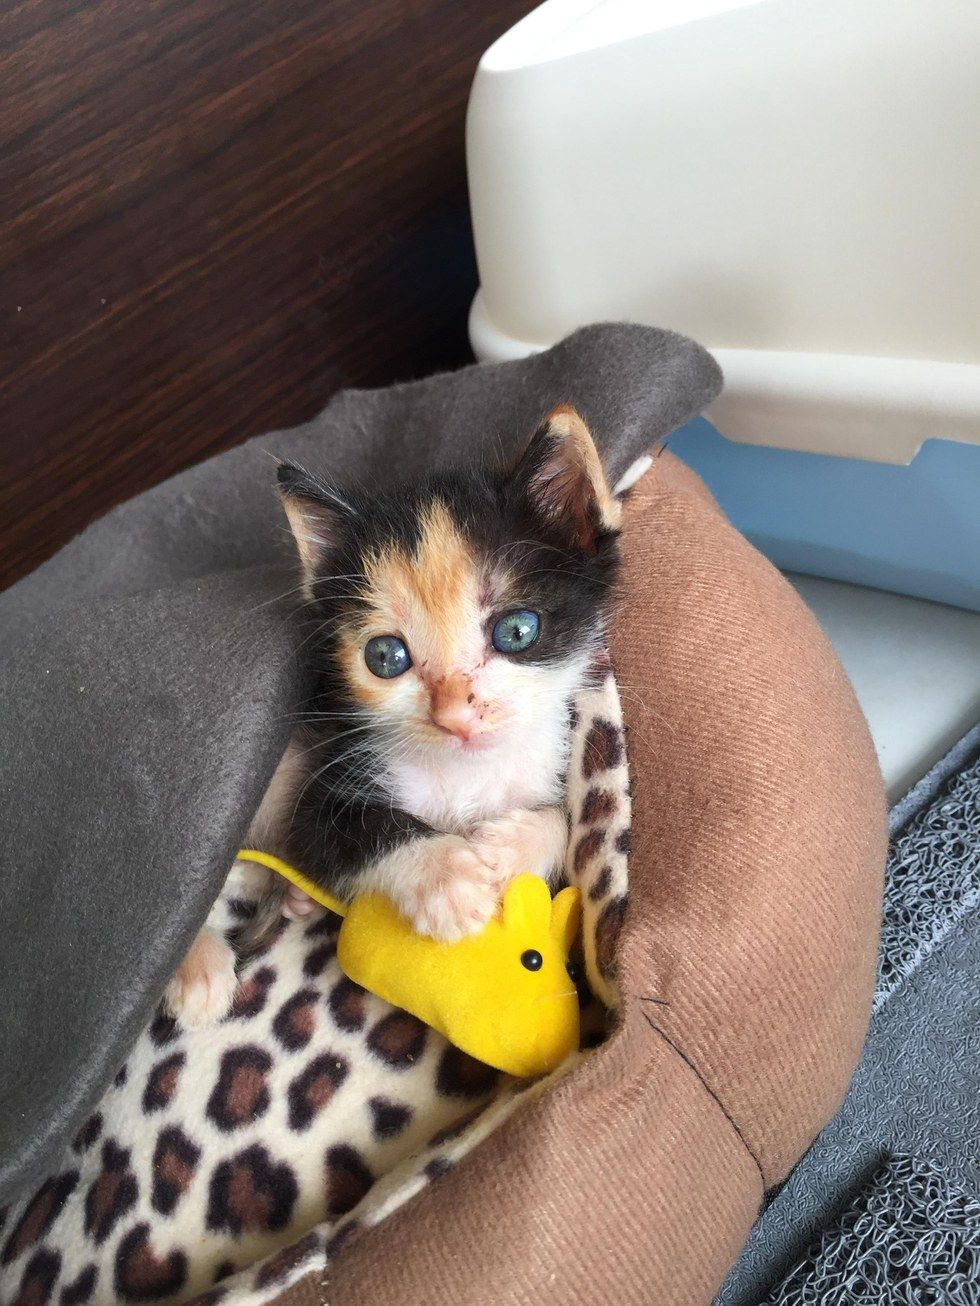 A Man Took In A Tiny Kitten Who Was Rejected By Her Mom And Became Her New Dad In The Months That Followed He Raised T Gorgeous Cats Tiny Kitten Pretty